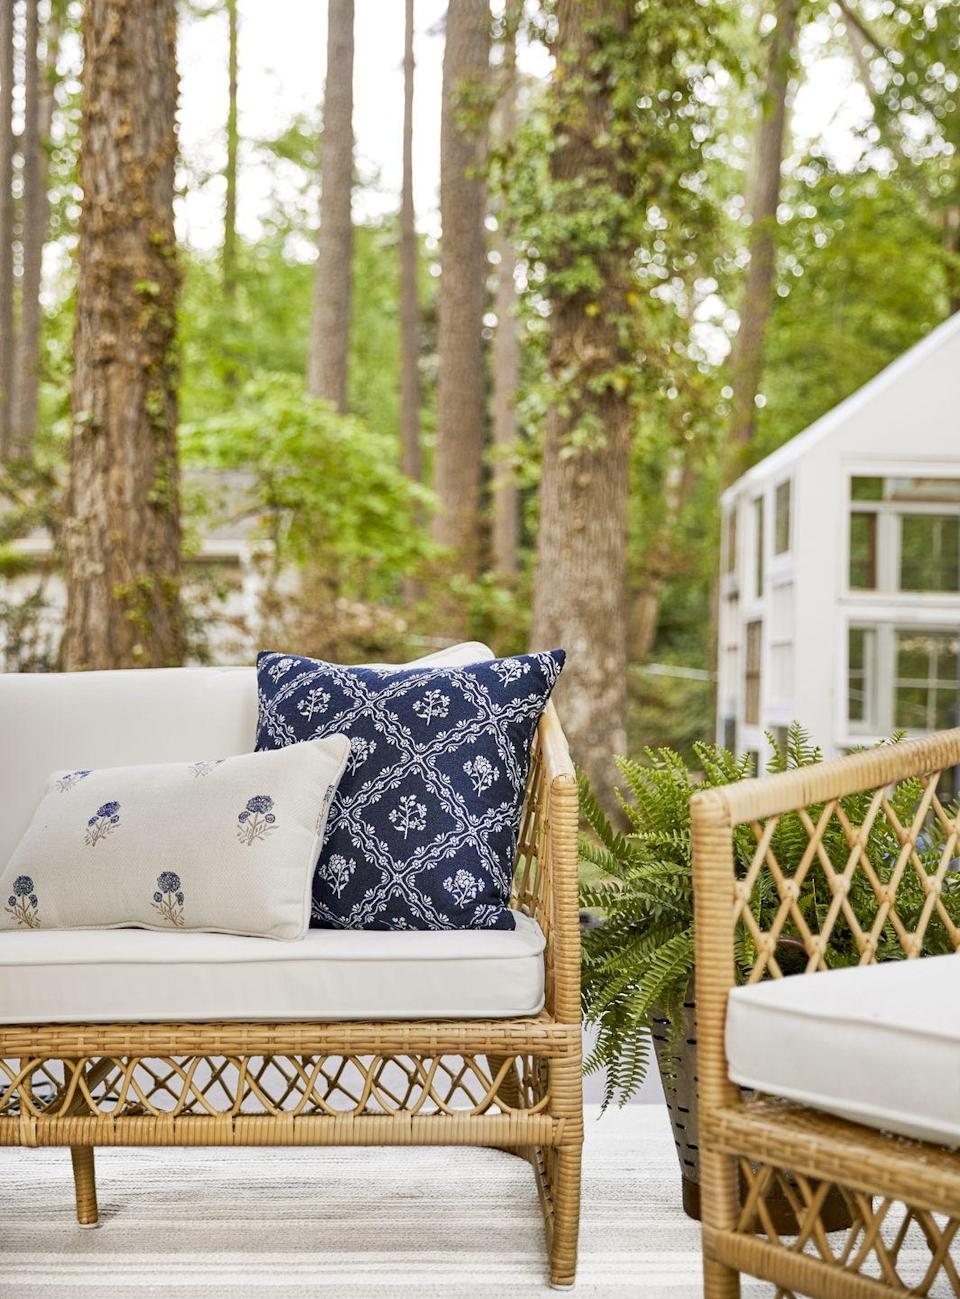 """<p>A mix of patterned pillows atop the rattan furniture's crisp white cushions—all made of outdoor-friendly, indoor-pretty <a href=""""https://www.sunbrella.com/outdoor-living"""" rel=""""nofollow noopener"""" target=""""_blank"""" data-ylk=""""slk:Sunbrella"""" class=""""link rapid-noclick-resp"""">Sunbrella</a> fabrics—brings practicality without sacrificing style.</p><p><strong>Get the Look: </strong><br><strong>Rug:</strong> <a href=""""https://www.colonialmills.com/collection-colors/1232"""" rel=""""nofollow noopener"""" target=""""_blank"""" data-ylk=""""slk:Sunbrella &quot;Southport Stripe&quot; in Ash by Colonial Mills"""" class=""""link rapid-noclick-resp"""">Sunbrella """"Southport Stripe"""" in Ash by Colonial Mills</a><strong><br>Sofa:</strong> <a href=""""https://go.redirectingat.com?id=74968X1596630&url=https%3A%2F%2Fwww.serenaandlily.com%2Fcapistrano-sofa---light-dune%2Fm13244.html%23q%3Dcapistrano%26start%3D6&sref=https%3A%2F%2Fwww.countryliving.com%2Fhome-design%2Fhouse-tours%2Fg36730466%2Fmakeover-takeover-backyard%2F"""" rel=""""nofollow noopener"""" target=""""_blank"""" data-ylk=""""slk:&quot;Capistrano&quot; (upholstered in Sunbrella's &quot;Canvas White&quot; fabric) by Serena & Lily"""" class=""""link rapid-noclick-resp"""">""""Capistrano"""" (upholstered in Sunbrella's """"Canvas White"""" fabric) by Serena & Lily</a><strong><br></strong><strong>White Patterned Pillows: </strong><a href=""""https://go.redirectingat.com?id=74968X1596630&url=https%3A%2F%2Fwww.ballarddesigns.com%2Foutdoor-fashion-throw-pillow---select-colors%2F597837&sref=https%3A%2F%2Fwww.countryliving.com%2Fhome-design%2Fhouse-tours%2Fg36730466%2Fmakeover-takeover-backyard%2F"""" rel=""""nofollow noopener"""" target=""""_blank"""" data-ylk=""""slk:Sunbrella &quot;Anais Indigo&quot; from Ballard Designs"""" class=""""link rapid-noclick-resp"""">Sunbrella """"Anais Indigo"""" from Ballard Designs</a><br><strong>Navy Patterned Pillows:</strong> <a href=""""https://go.redirectingat.com?id=74968X1596630&url=https%3A%2F%2Fwww.shopterrain.com%2Fproducts%2Ffloral-diamond-outdoor-pillow&sref=https%3A%2F%2Fwww.countryliving.com%2"""